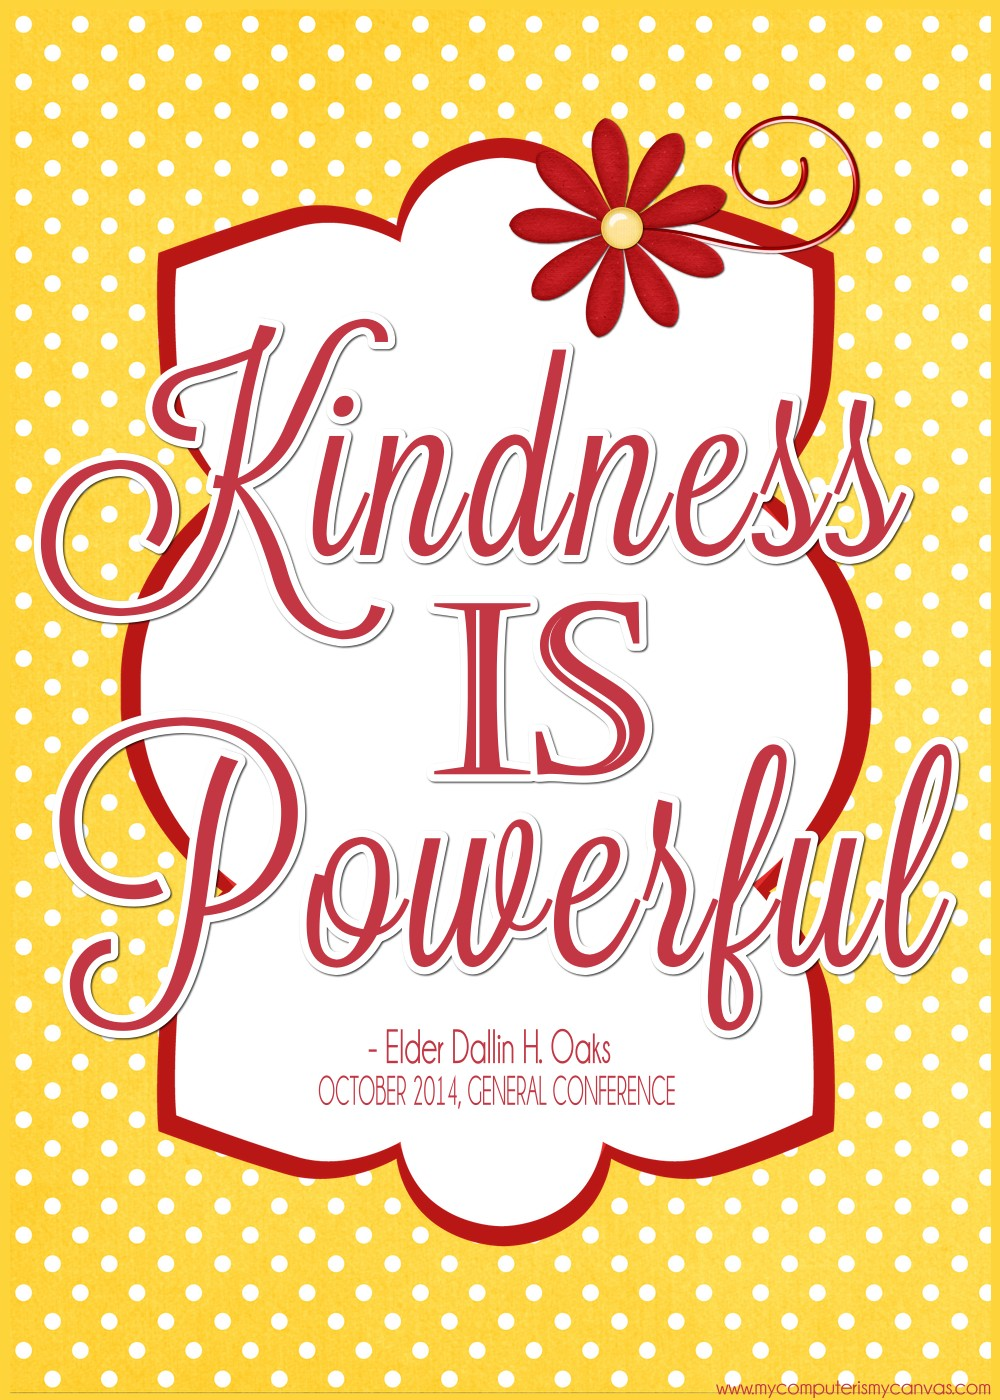 Quote About Kindness My Computer Is My Canvas Lds General Conference Quotes October 2014